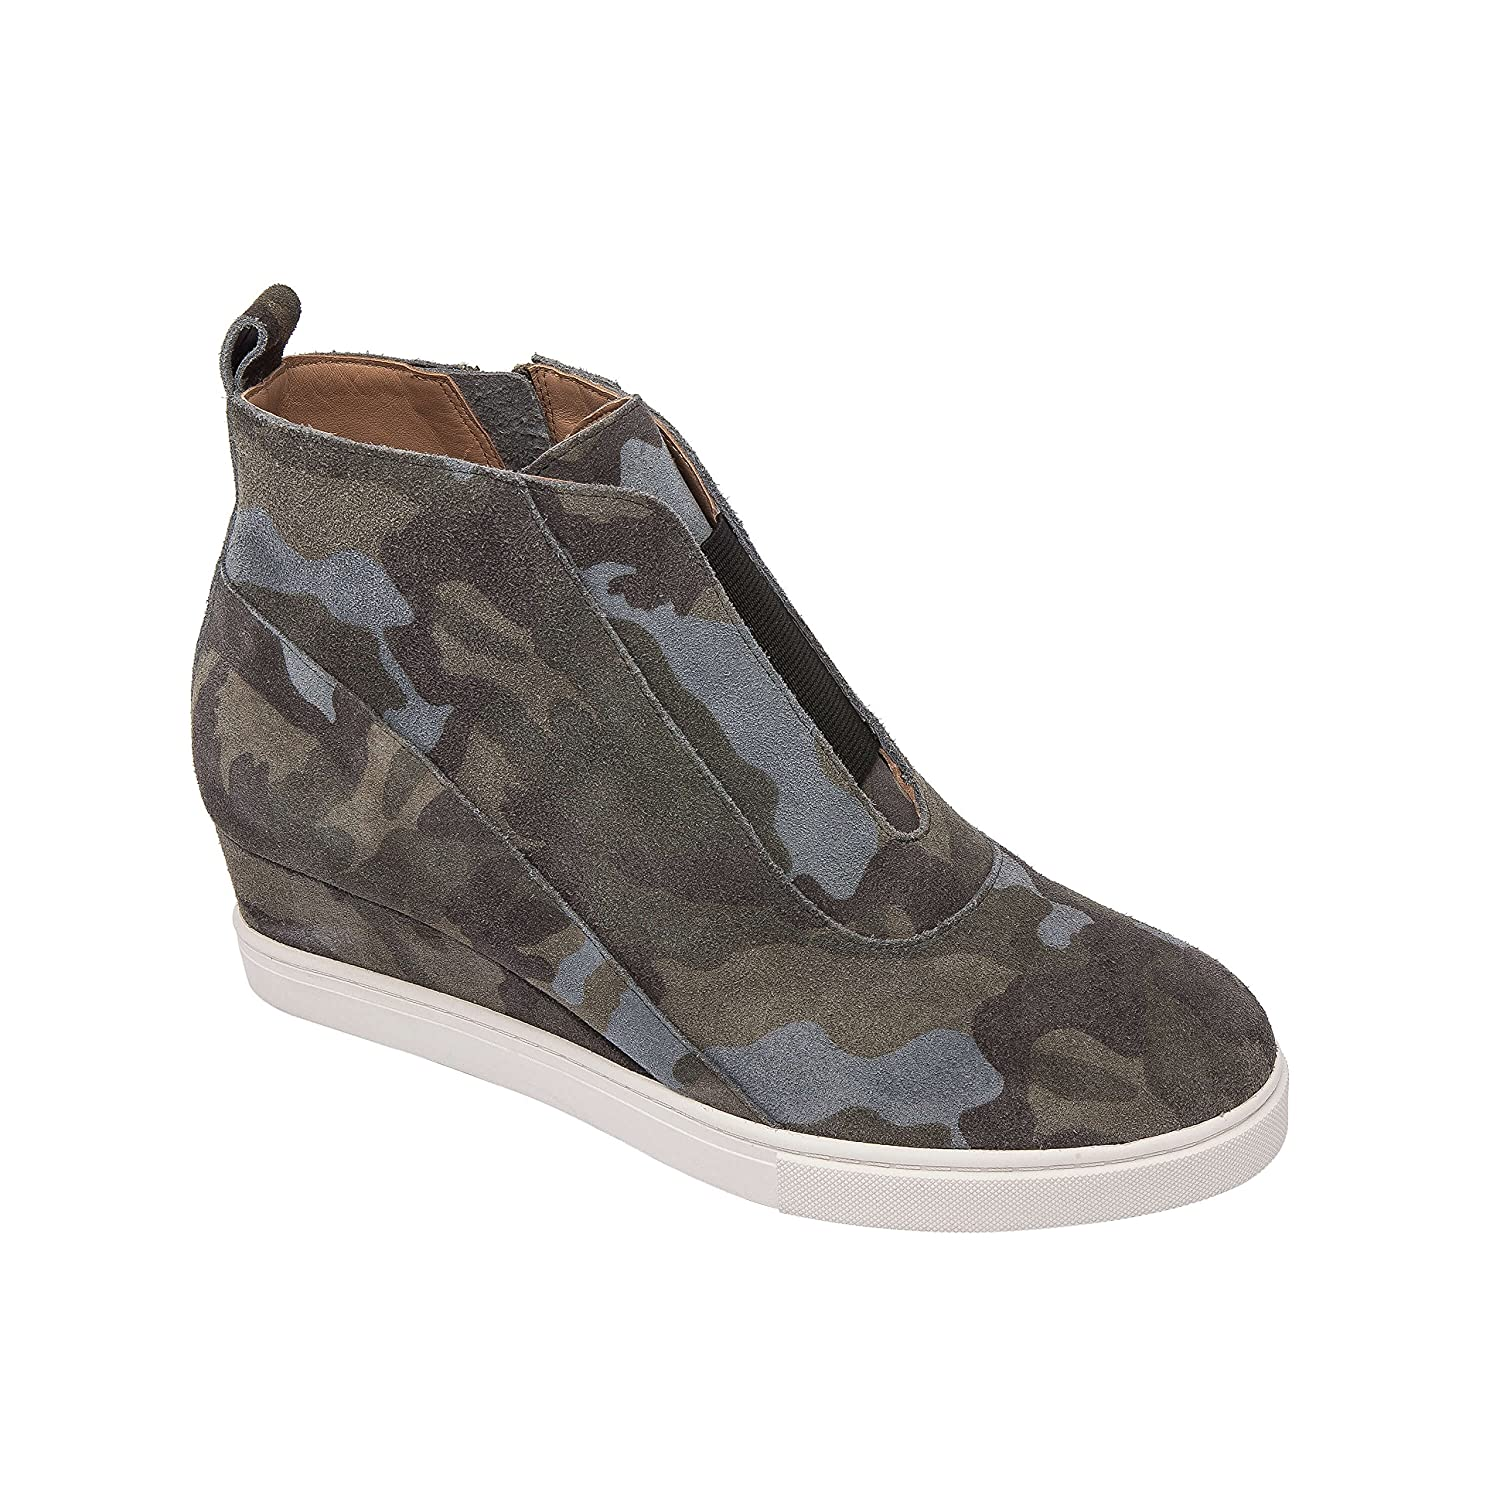 Linea Paolo Anna | Low Heel Designer Platform Wedge Sneaker Bootie Comfortable Fashion Ankle Boot (New Fall) B07F6W1N49 6 M US|Dark Green/Light Grey Split Suede